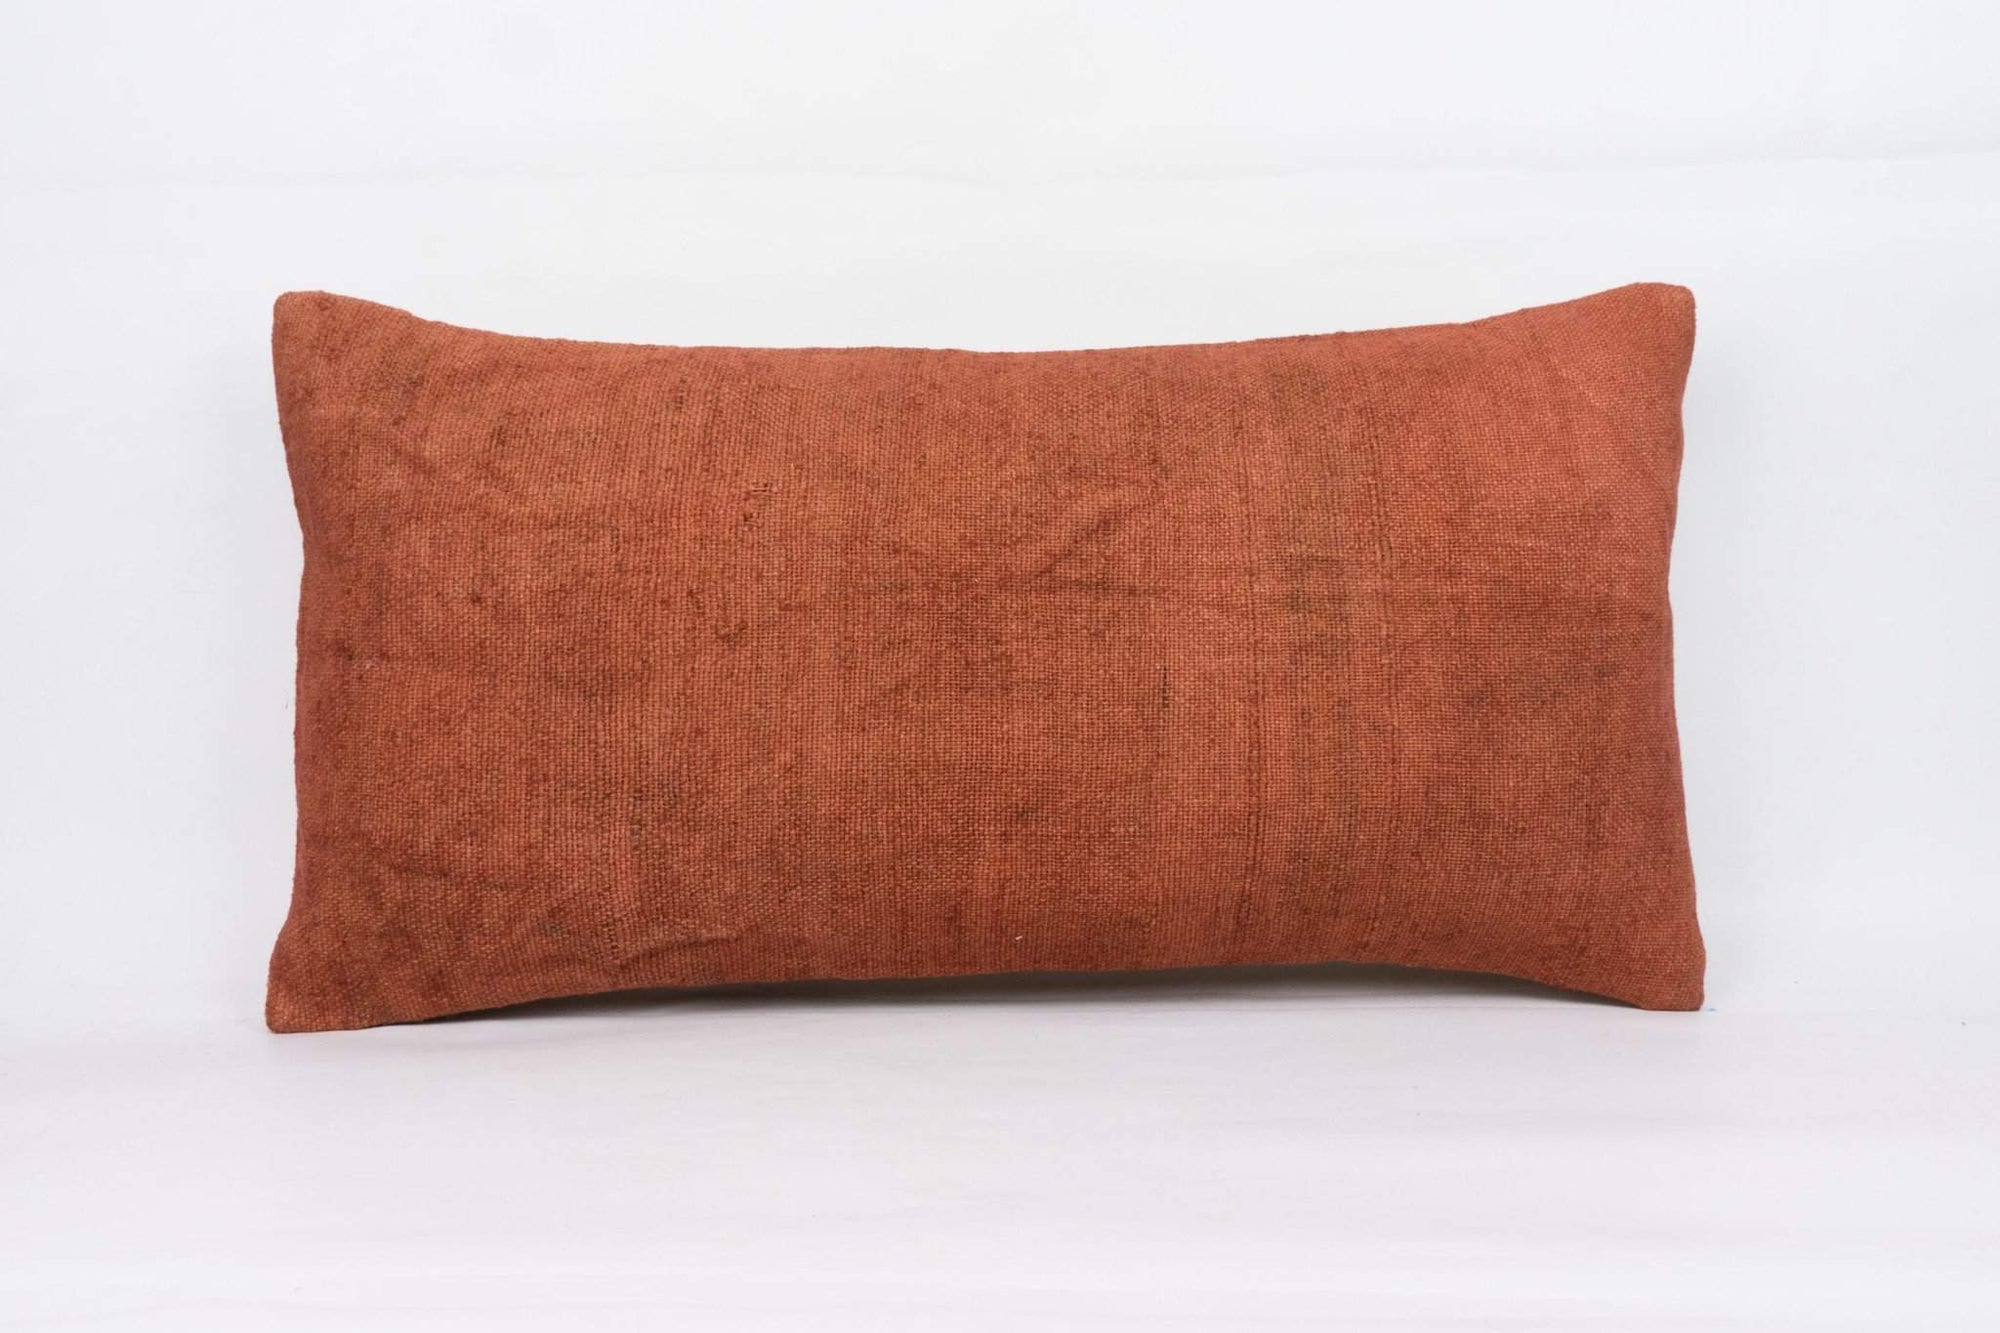 Plain Brown Kilim Pillow Cover 12x24 4192 - kilimpillowstore  - 1